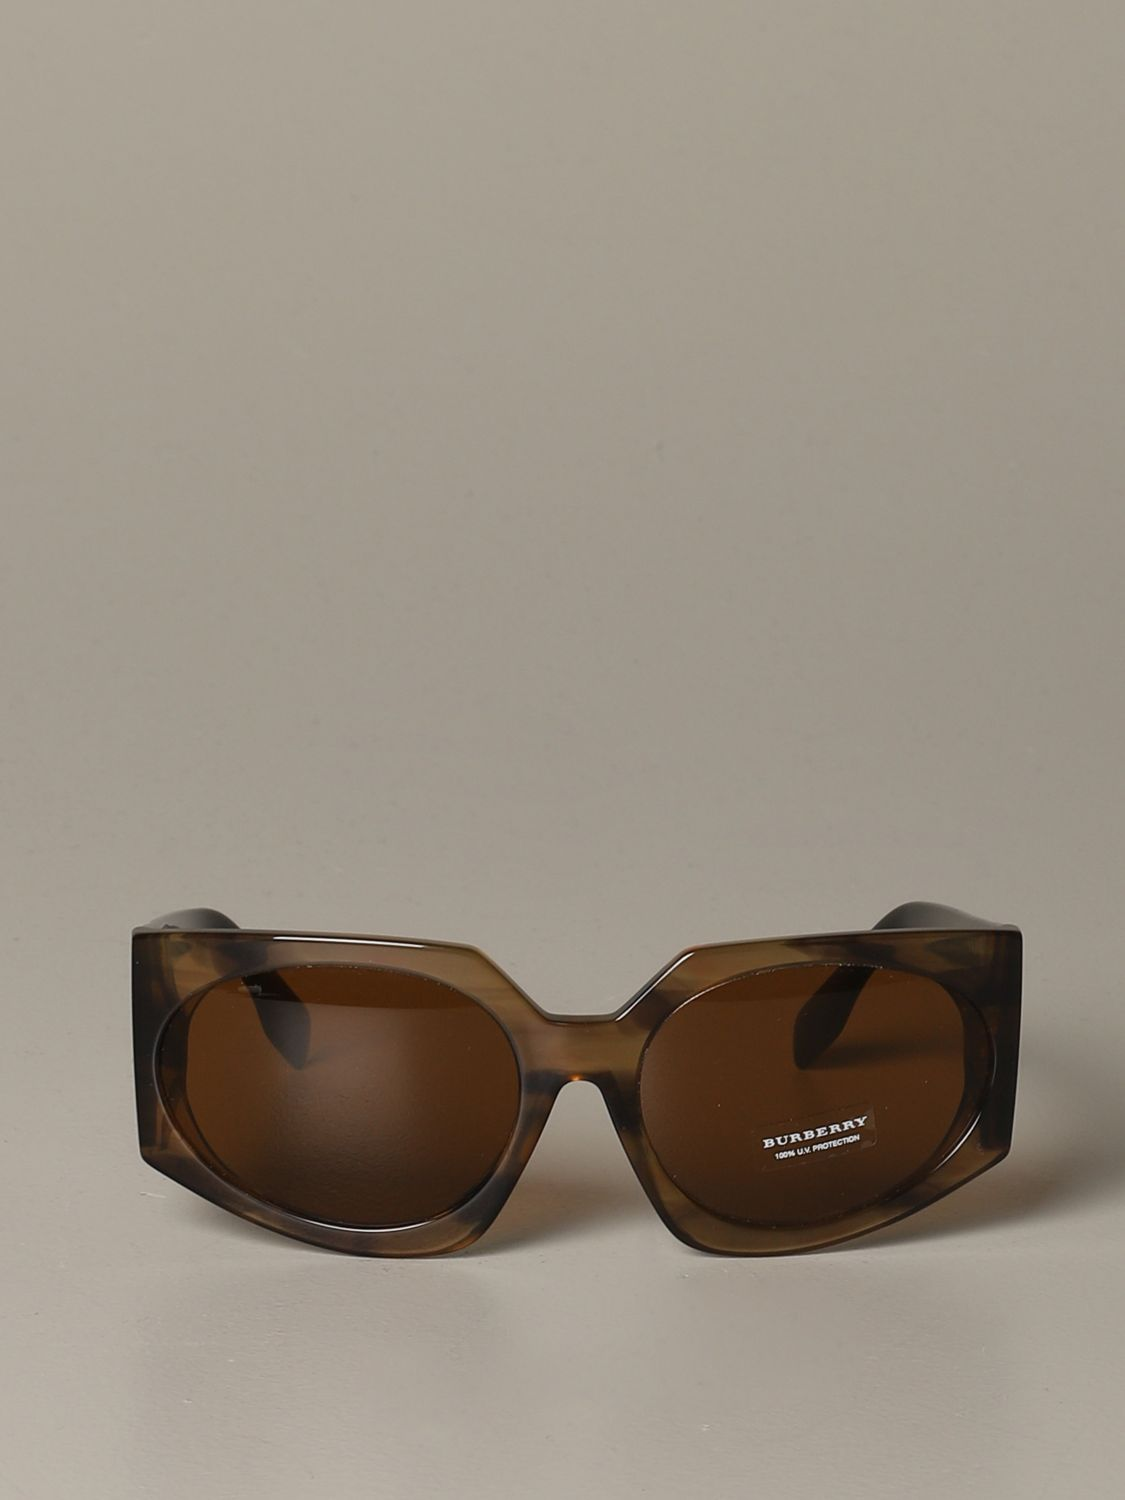 Brille Burberry: Brille damen Burberry braun 2